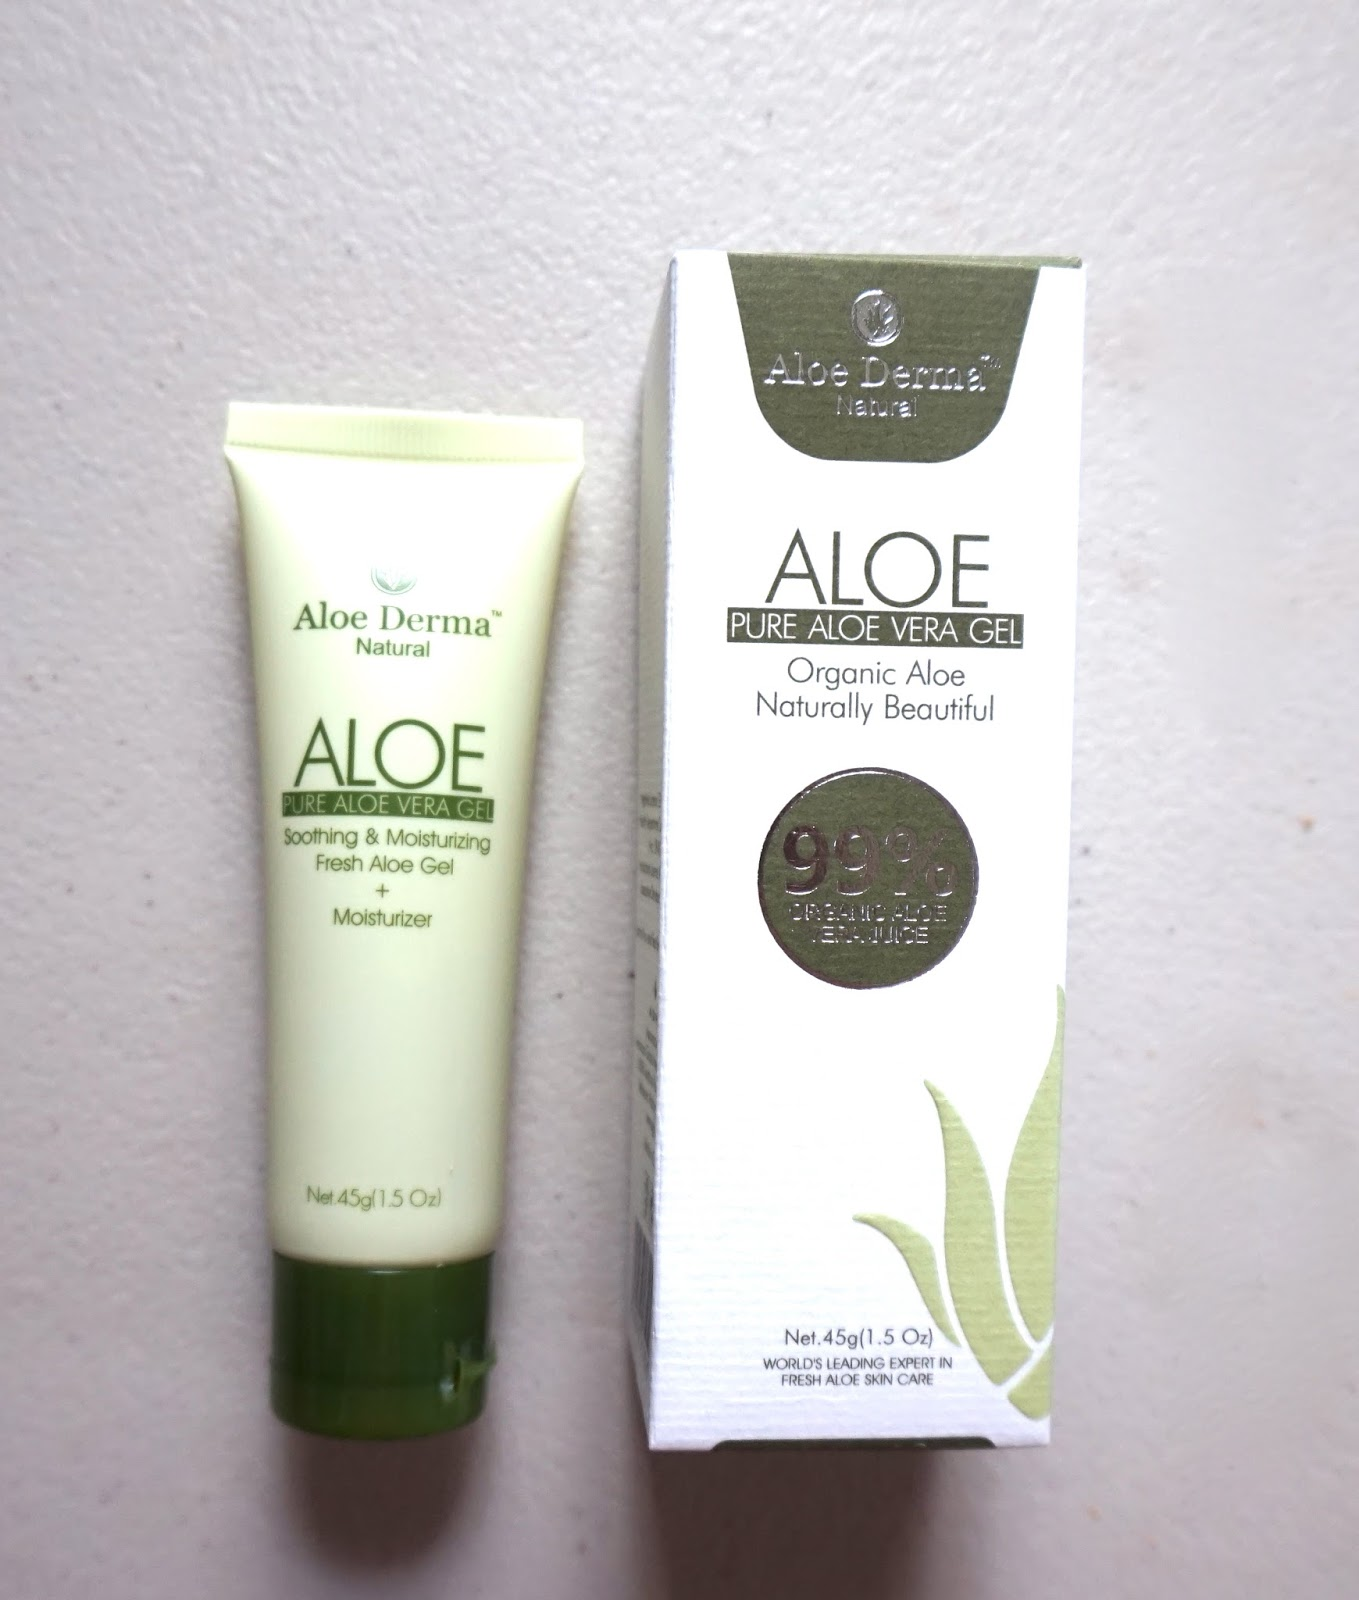 aloe derma aloe vera gel review uses and effects the. Black Bedroom Furniture Sets. Home Design Ideas